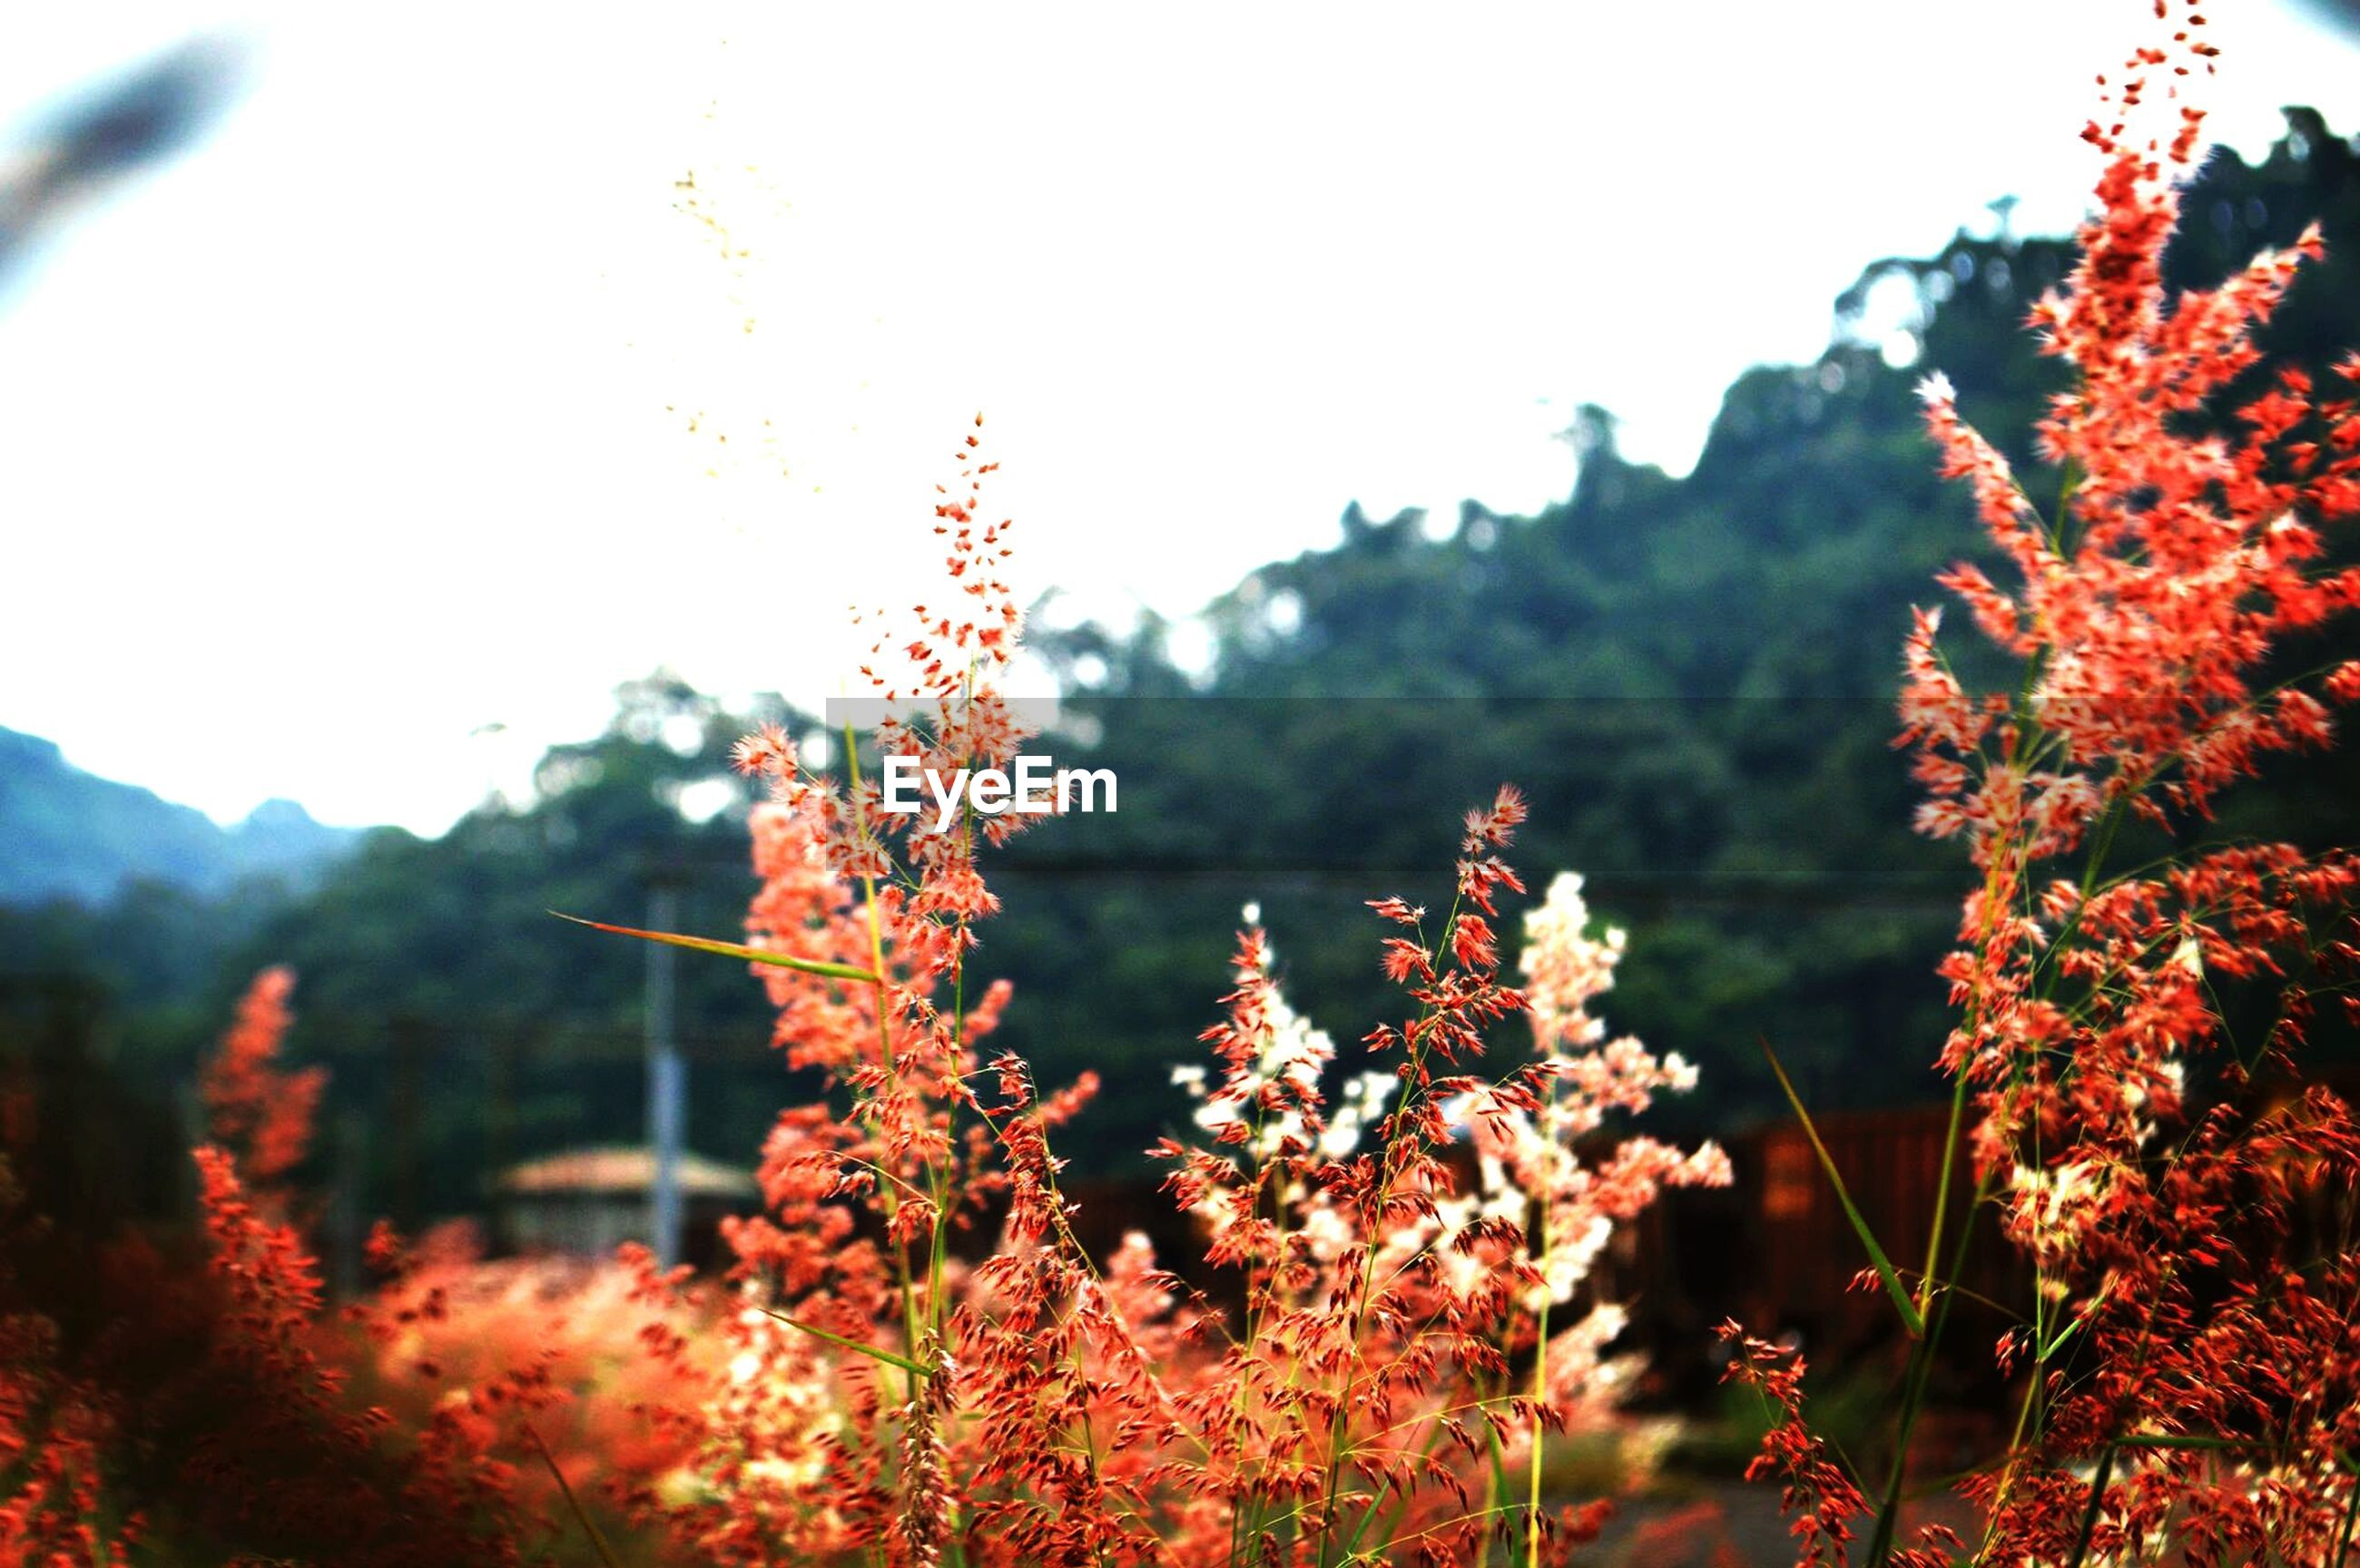 flower, growth, tree, freshness, beauty in nature, nature, clear sky, fragility, branch, focus on foreground, blooming, plant, red, blossom, in bloom, close-up, low angle view, season, tranquility, sky